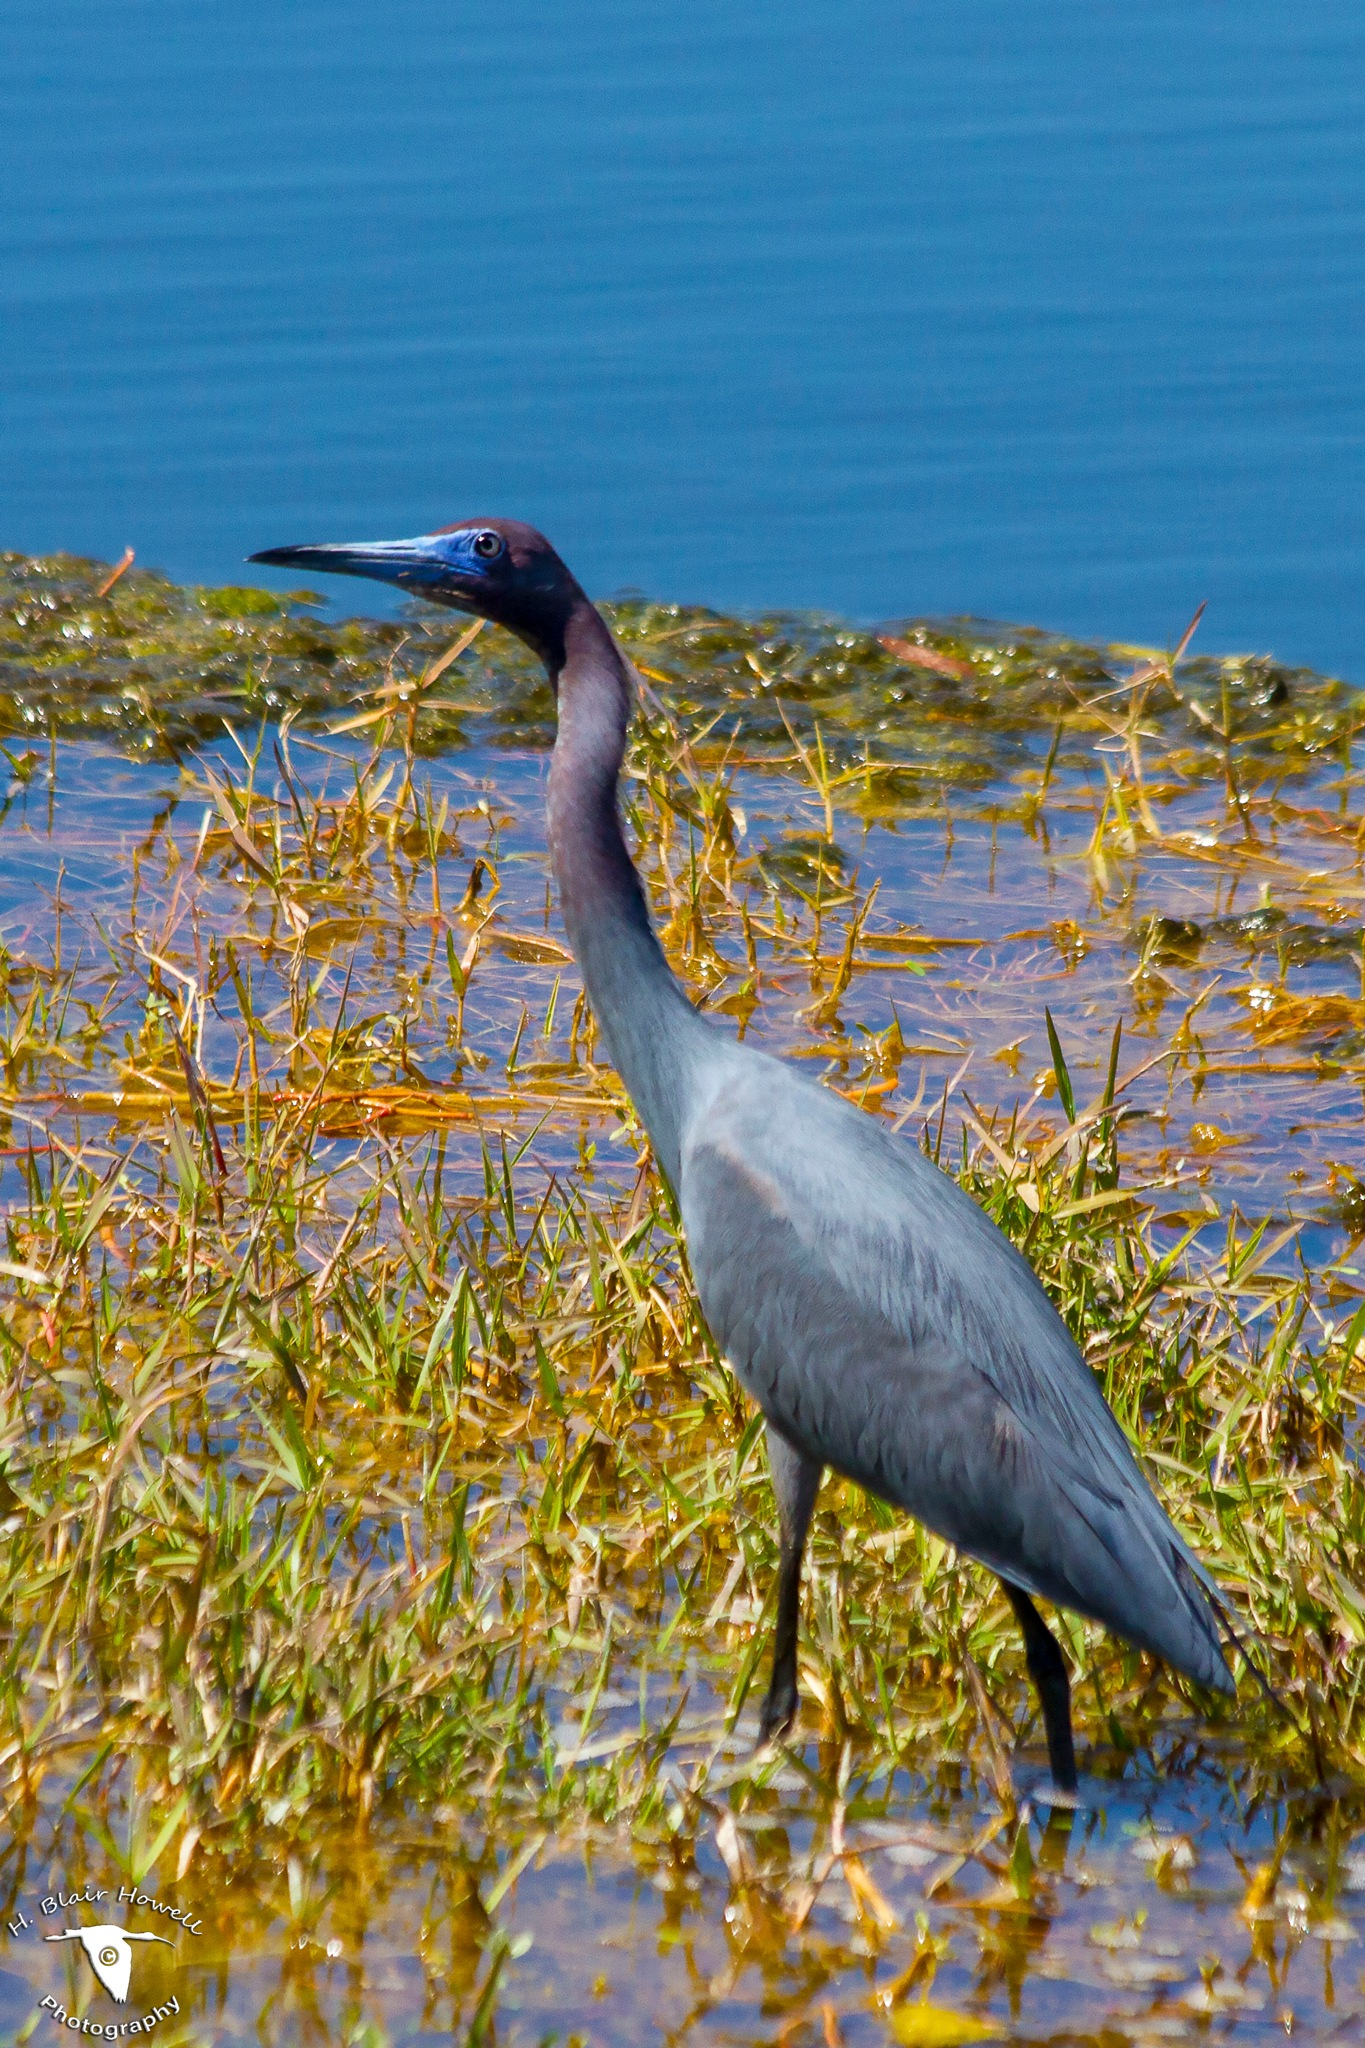 Little Blue Heron (Egretta caerulea) by HBlairHowell